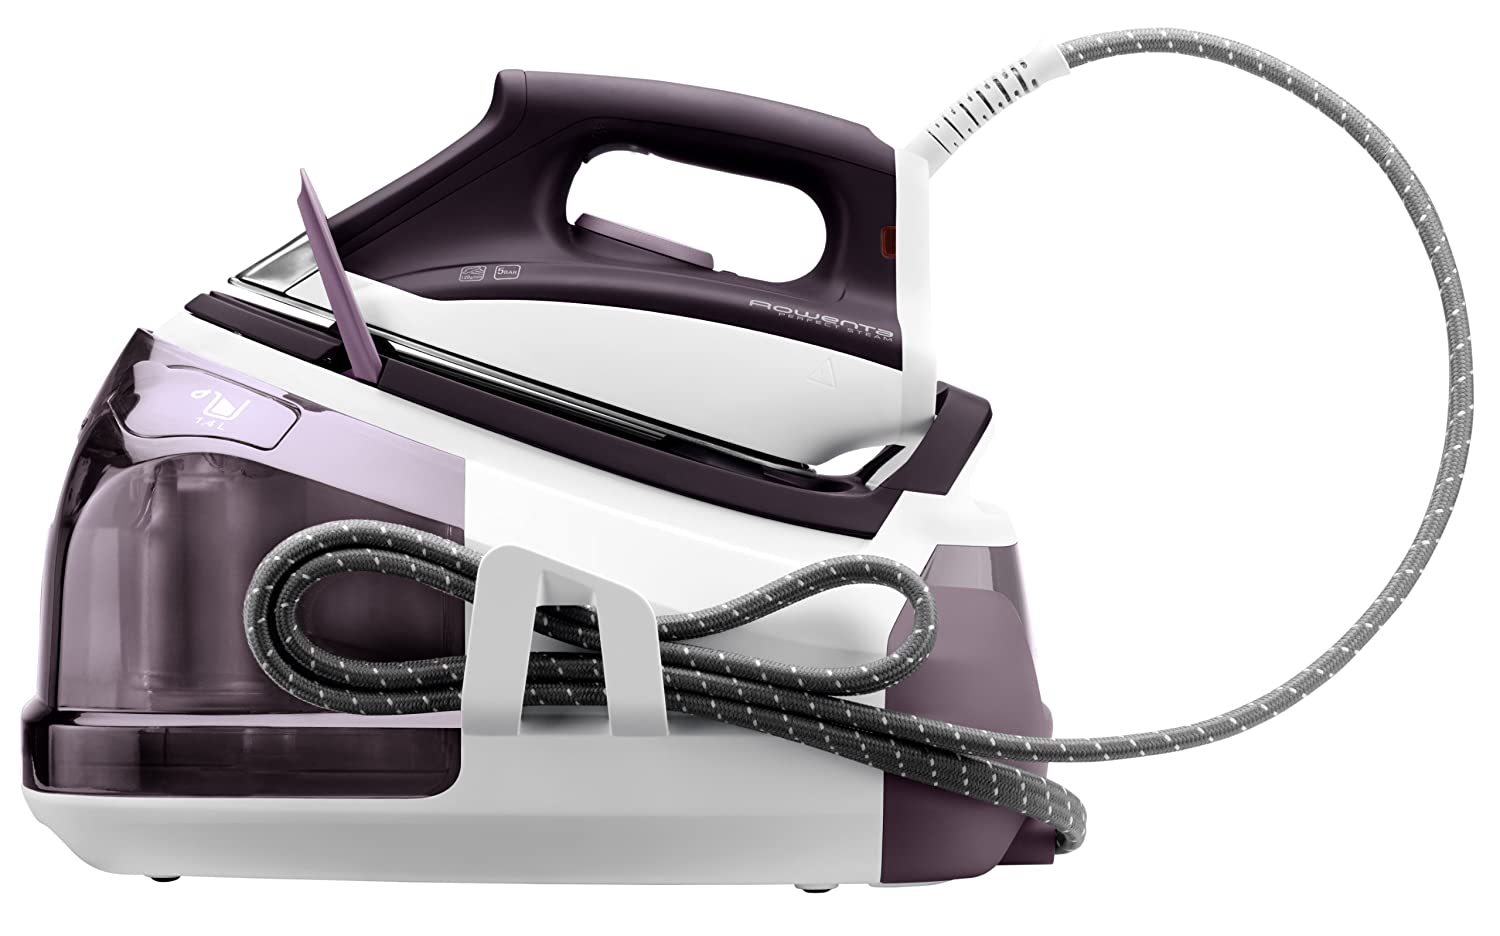 Cleaning rowenta pressure iron and steamer - Cleaning Rowenta Pressure Iron And Steamer 11